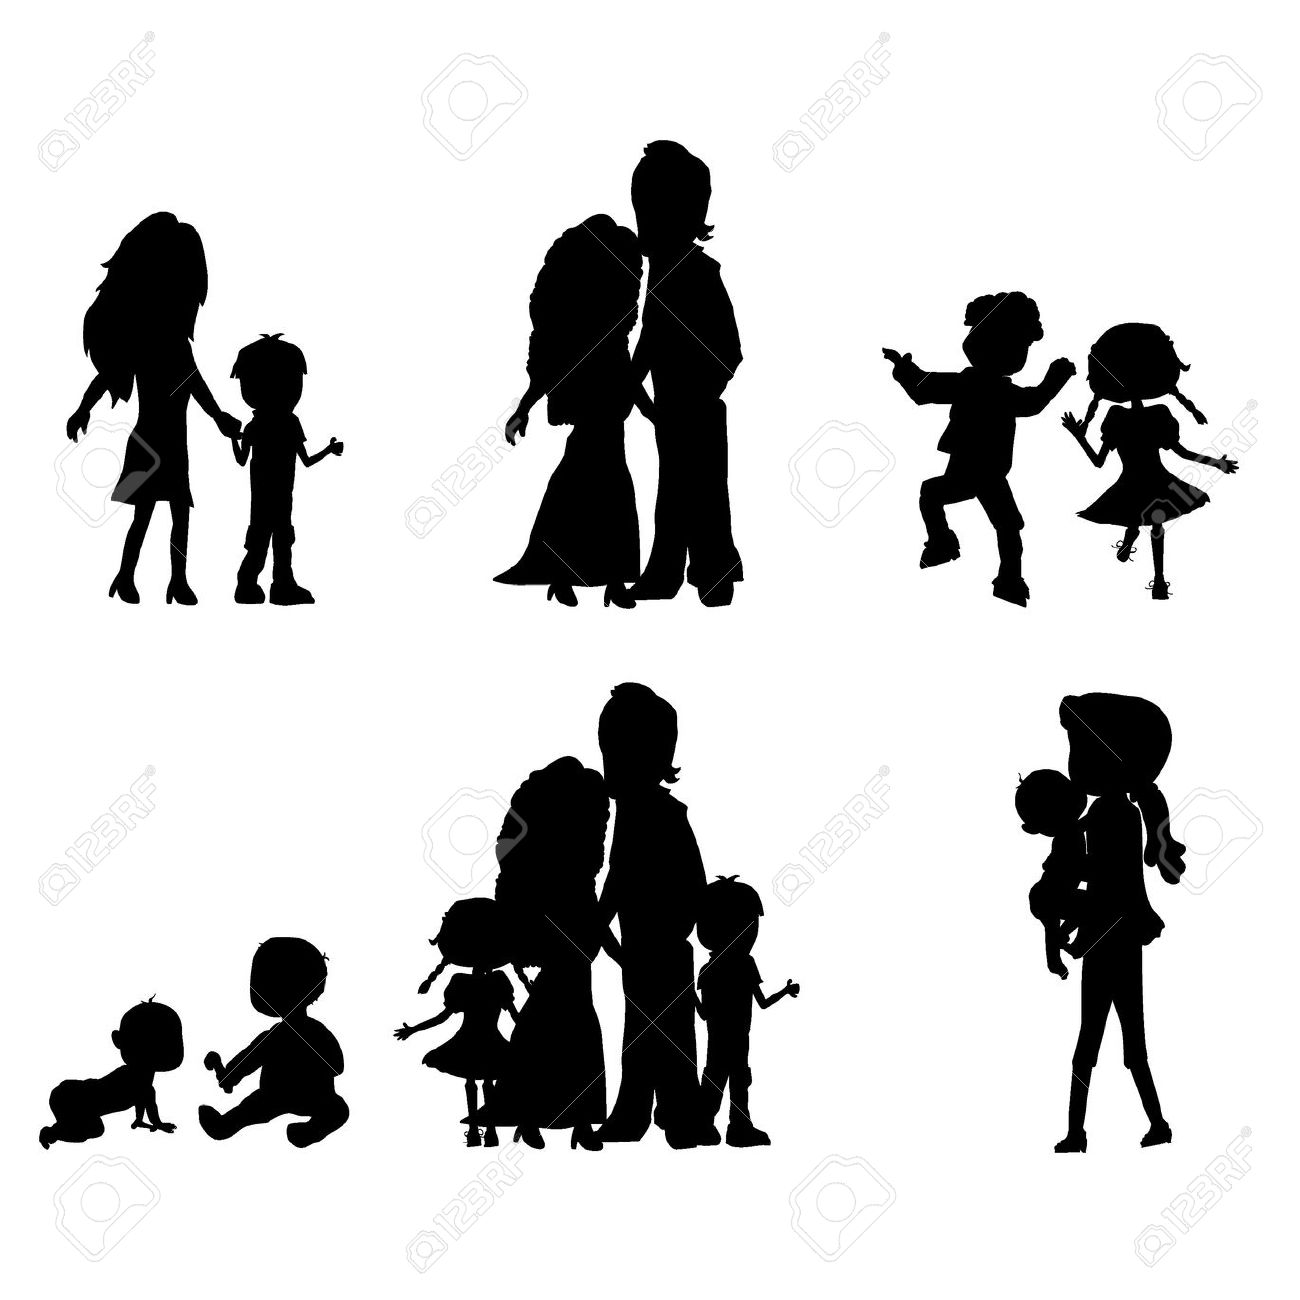 Silhouette Of Kids Holding Hands